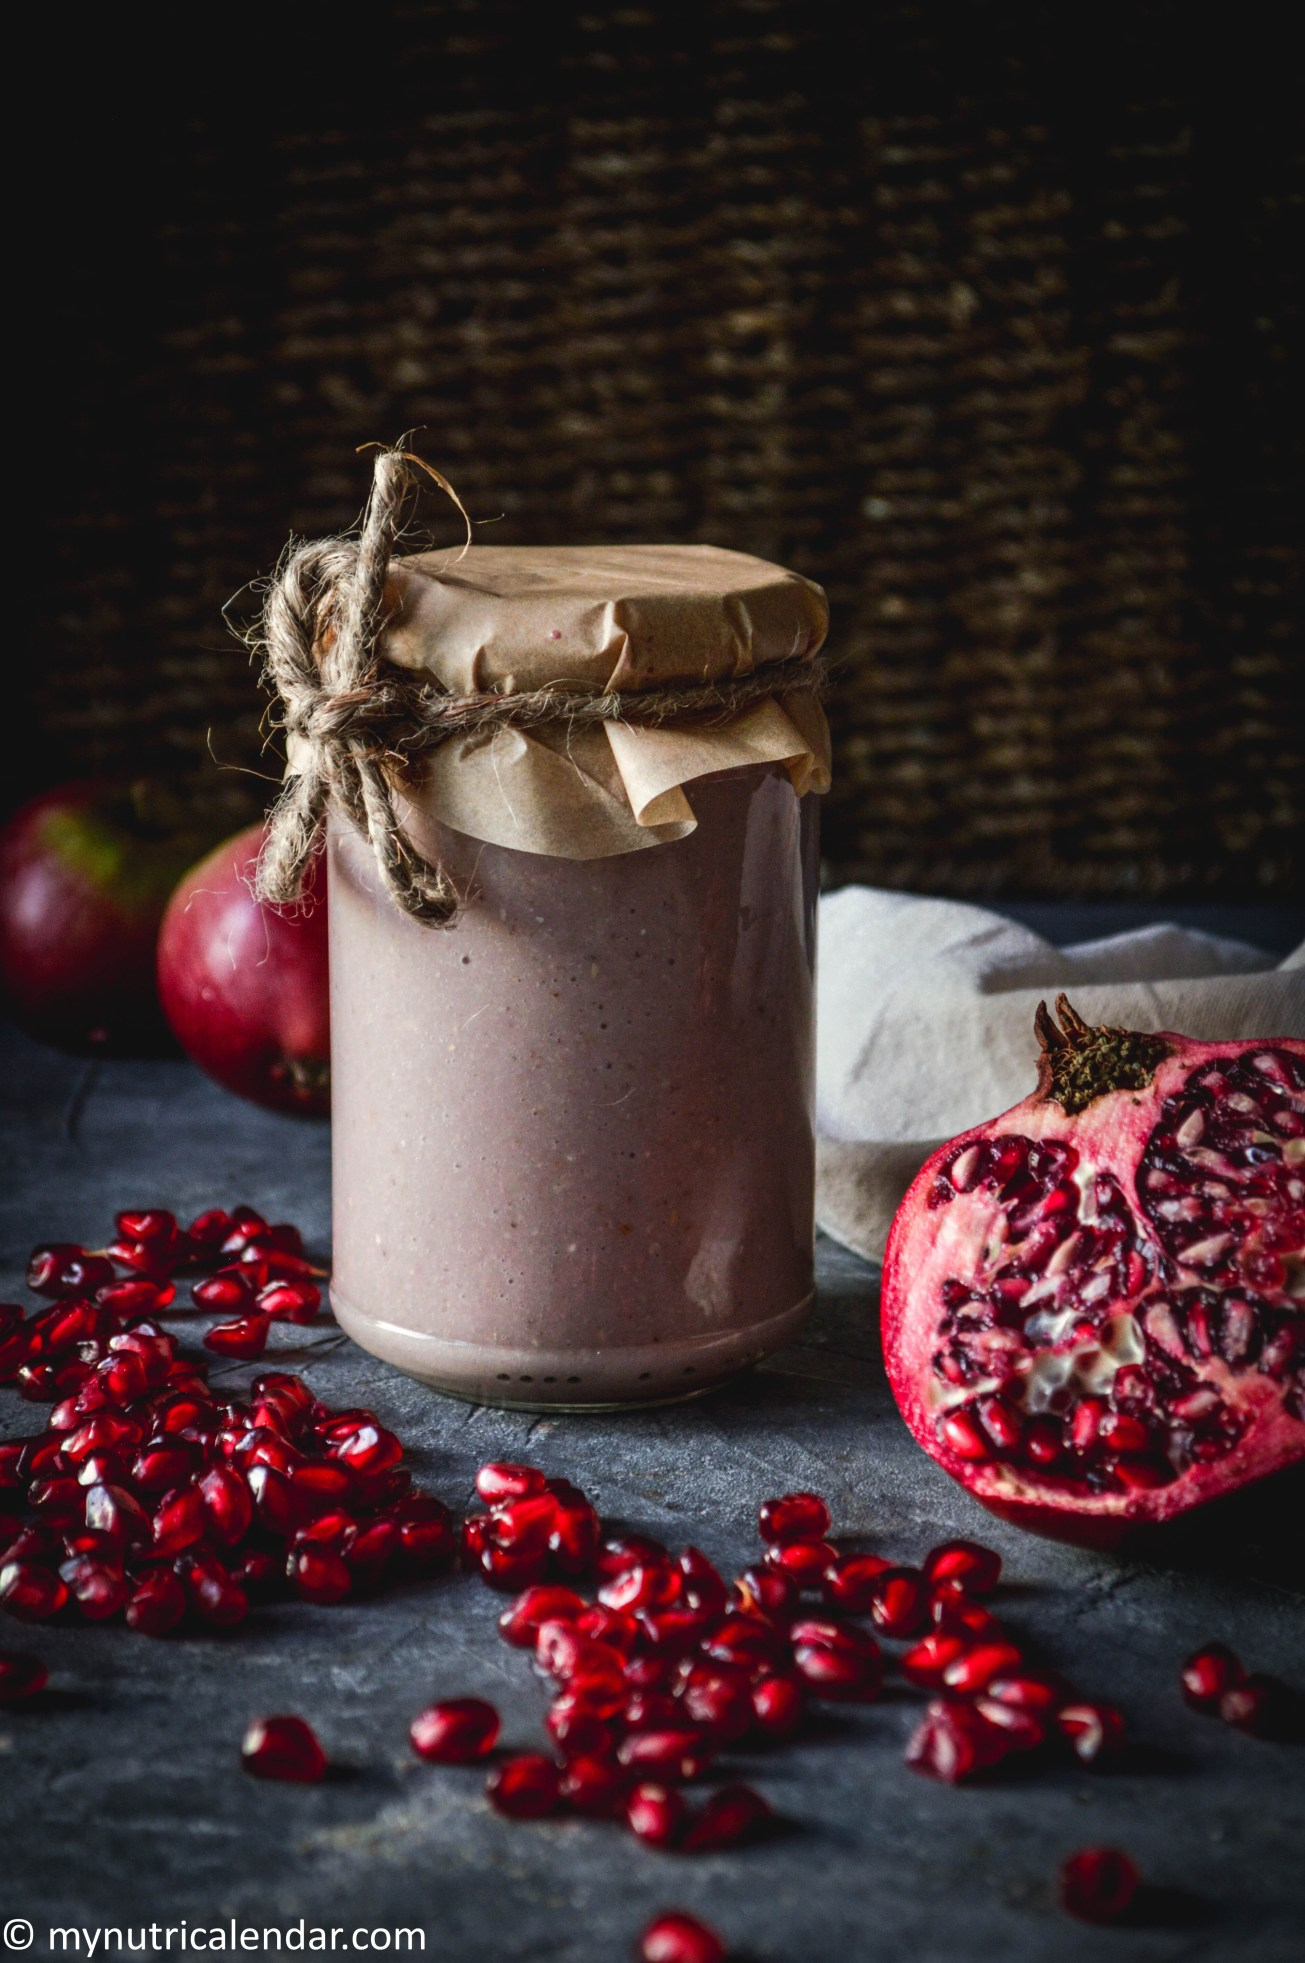 pomegranate smoothie food photography still life autumn produce eat seasonal 2.jpg